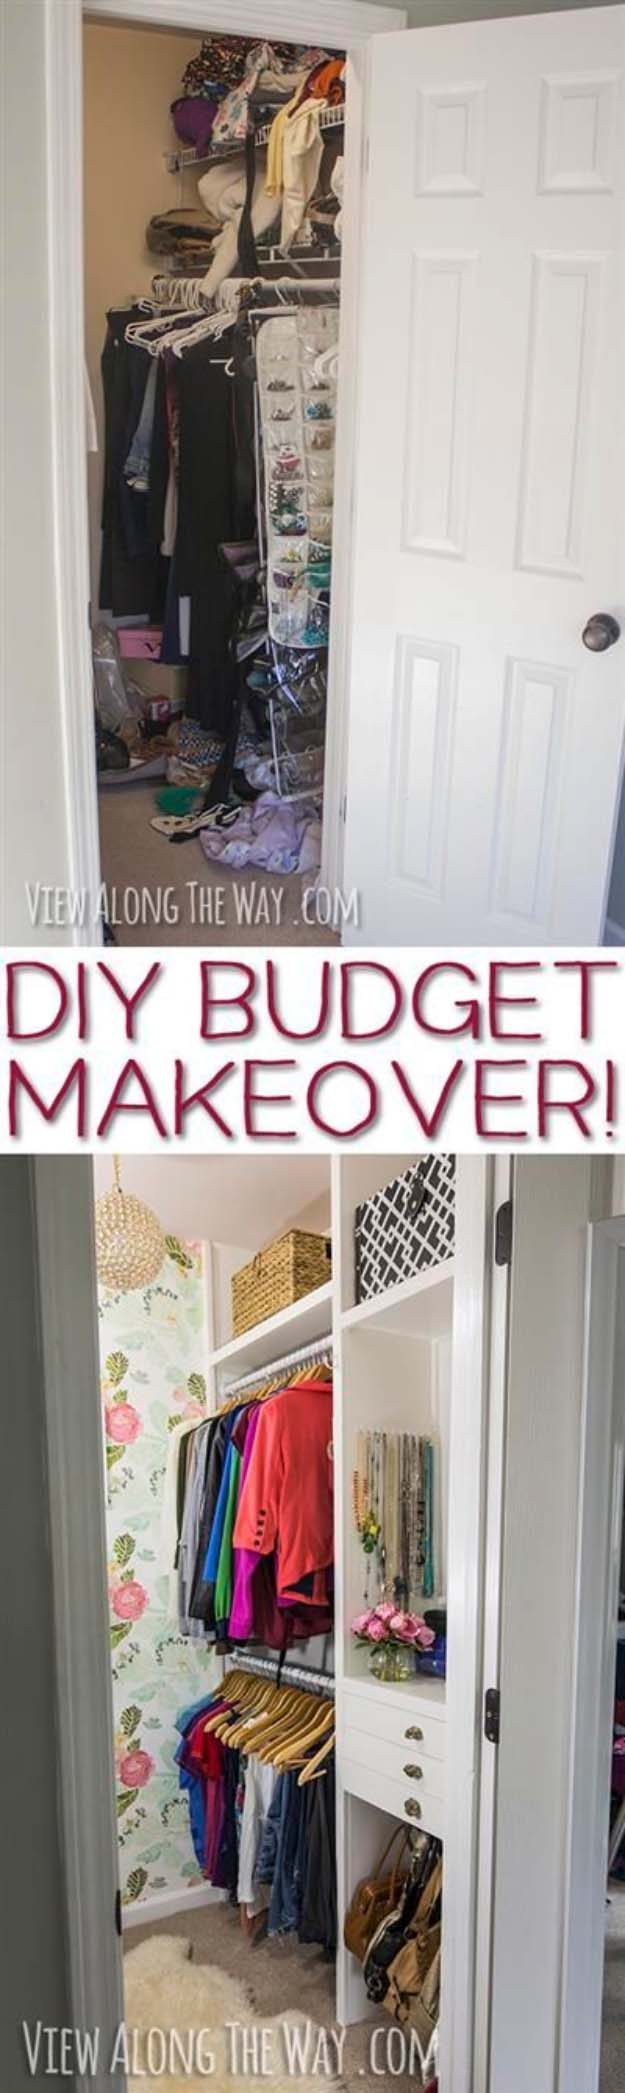 DIY Closet Organization Ideas for Messy Closets and Small Spaces. Organizing Hacks and Homemade Shelving And Storage Tips for Garage, Pantry, Bedroom., Clothes and Kitchen | Girly-Glam Closet Makeover REVEAL #organizing #closets #organizingideas